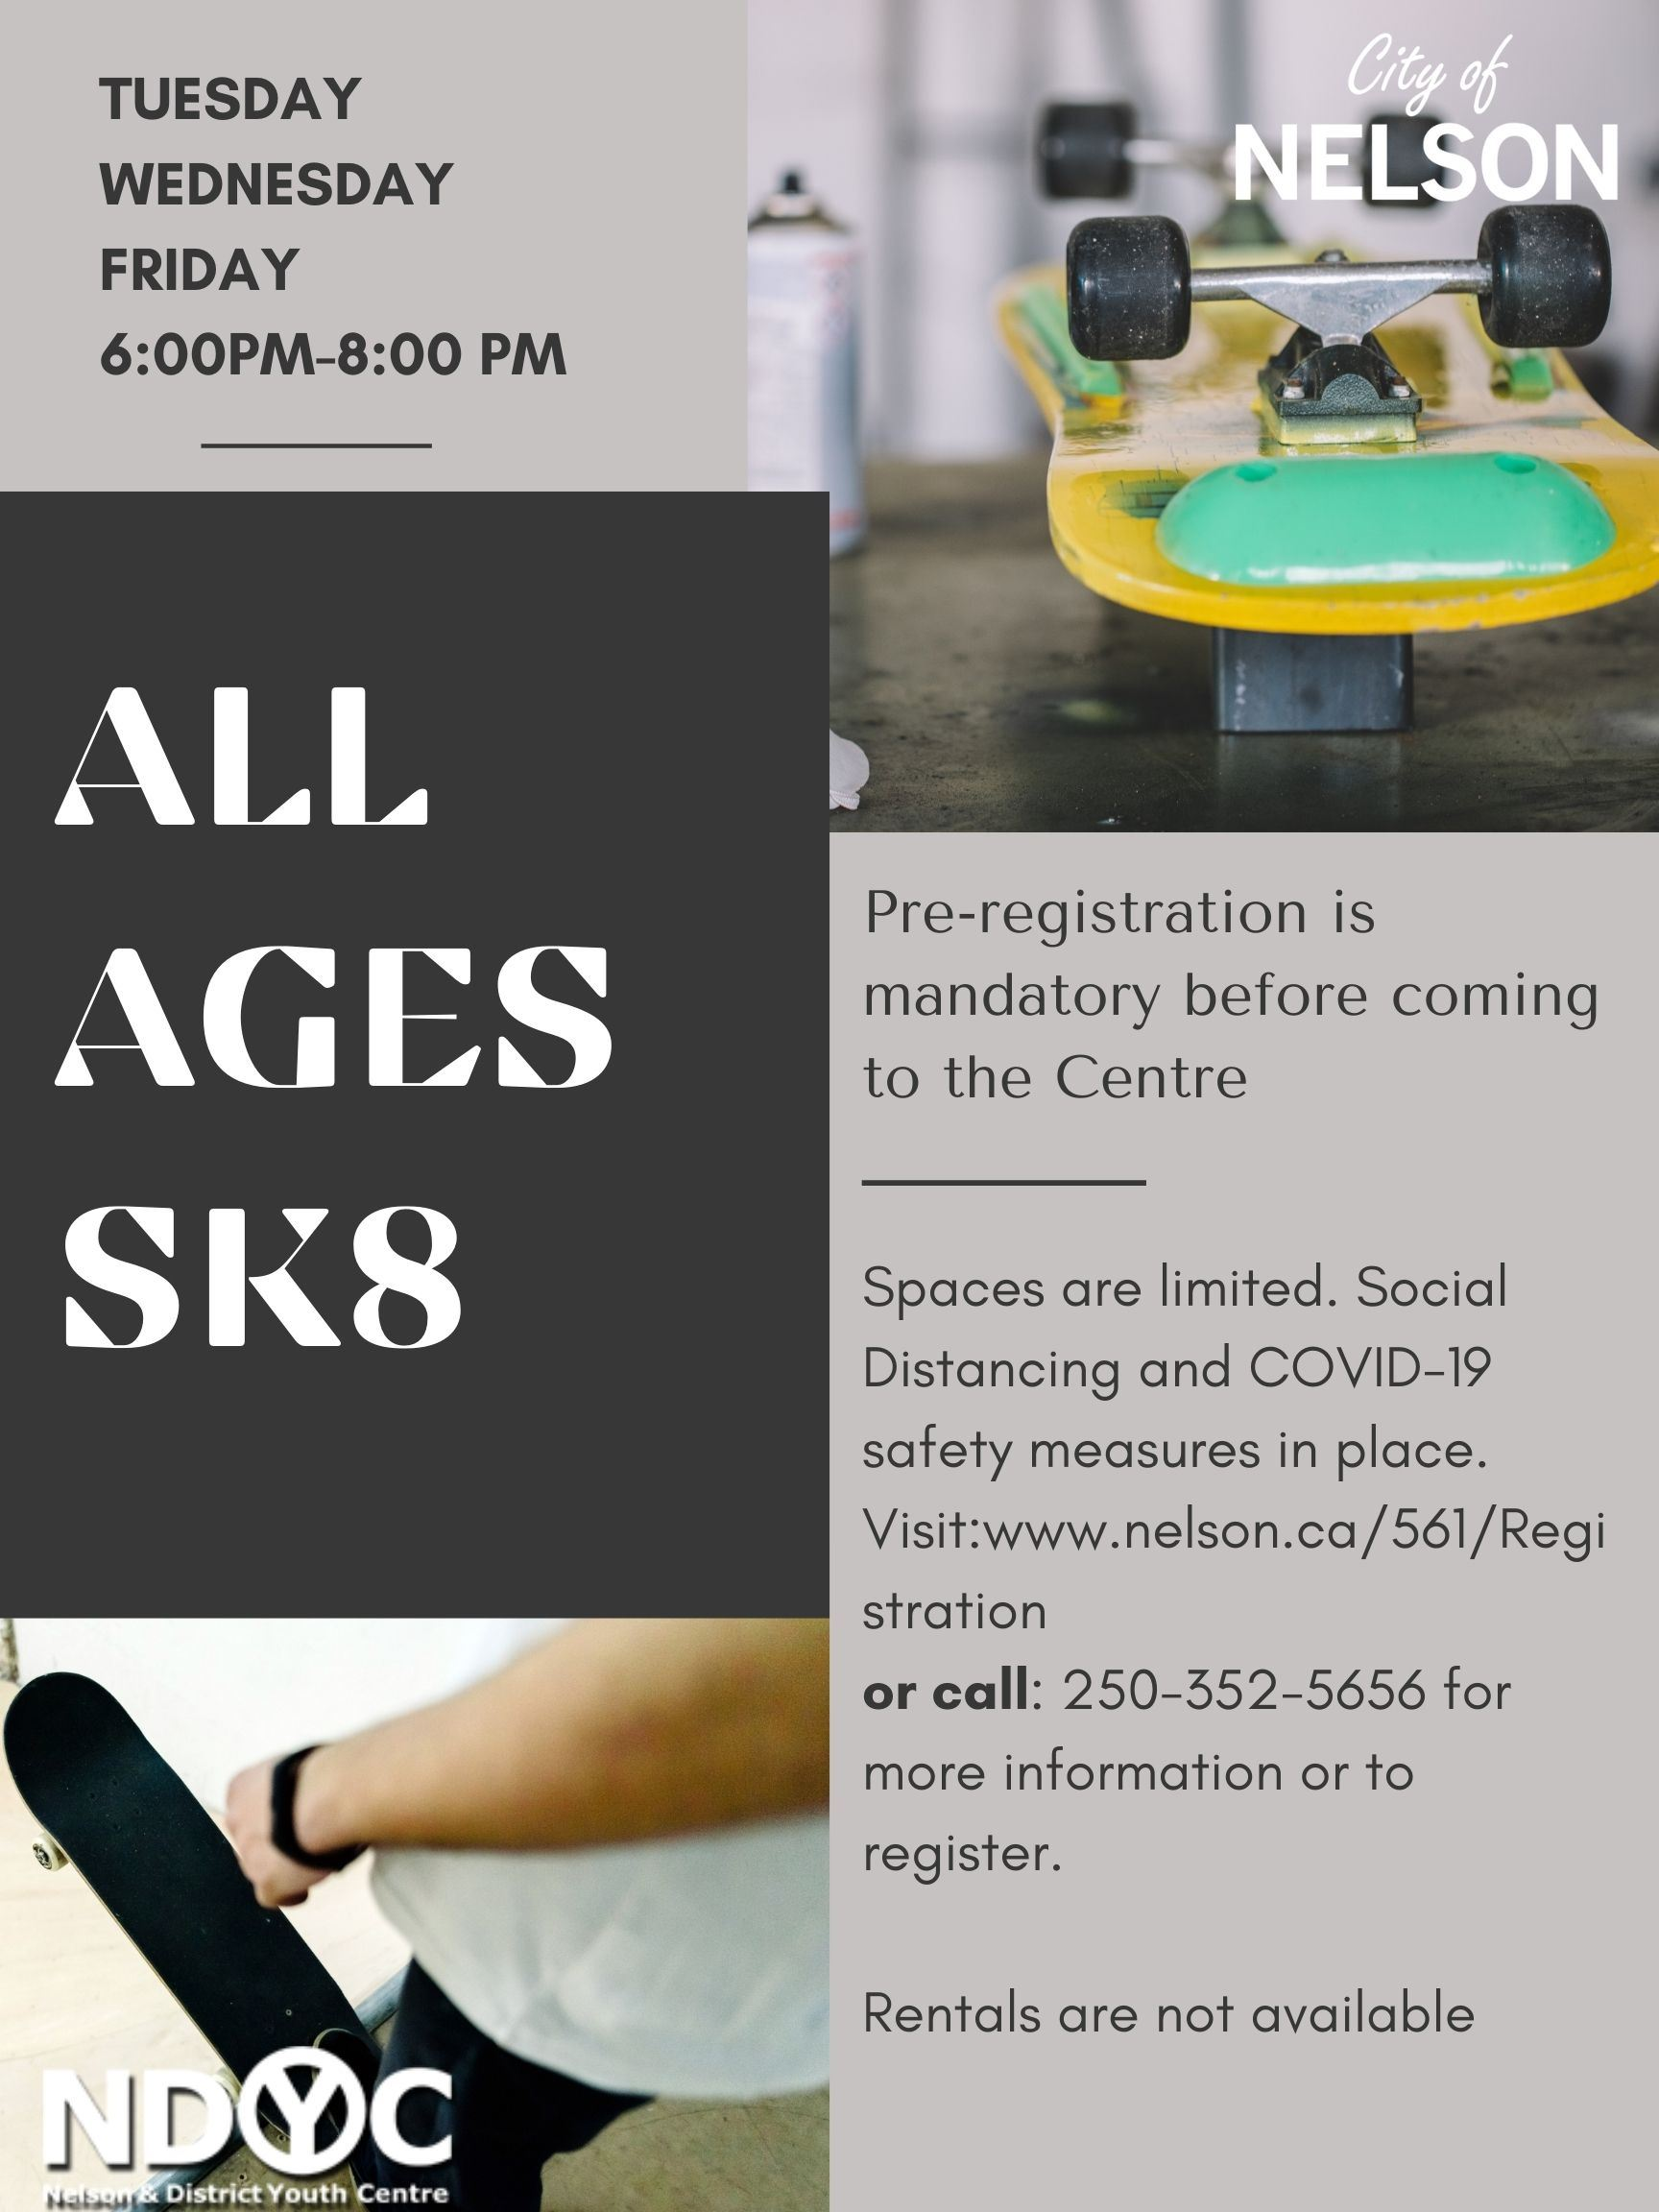 All ages sk8